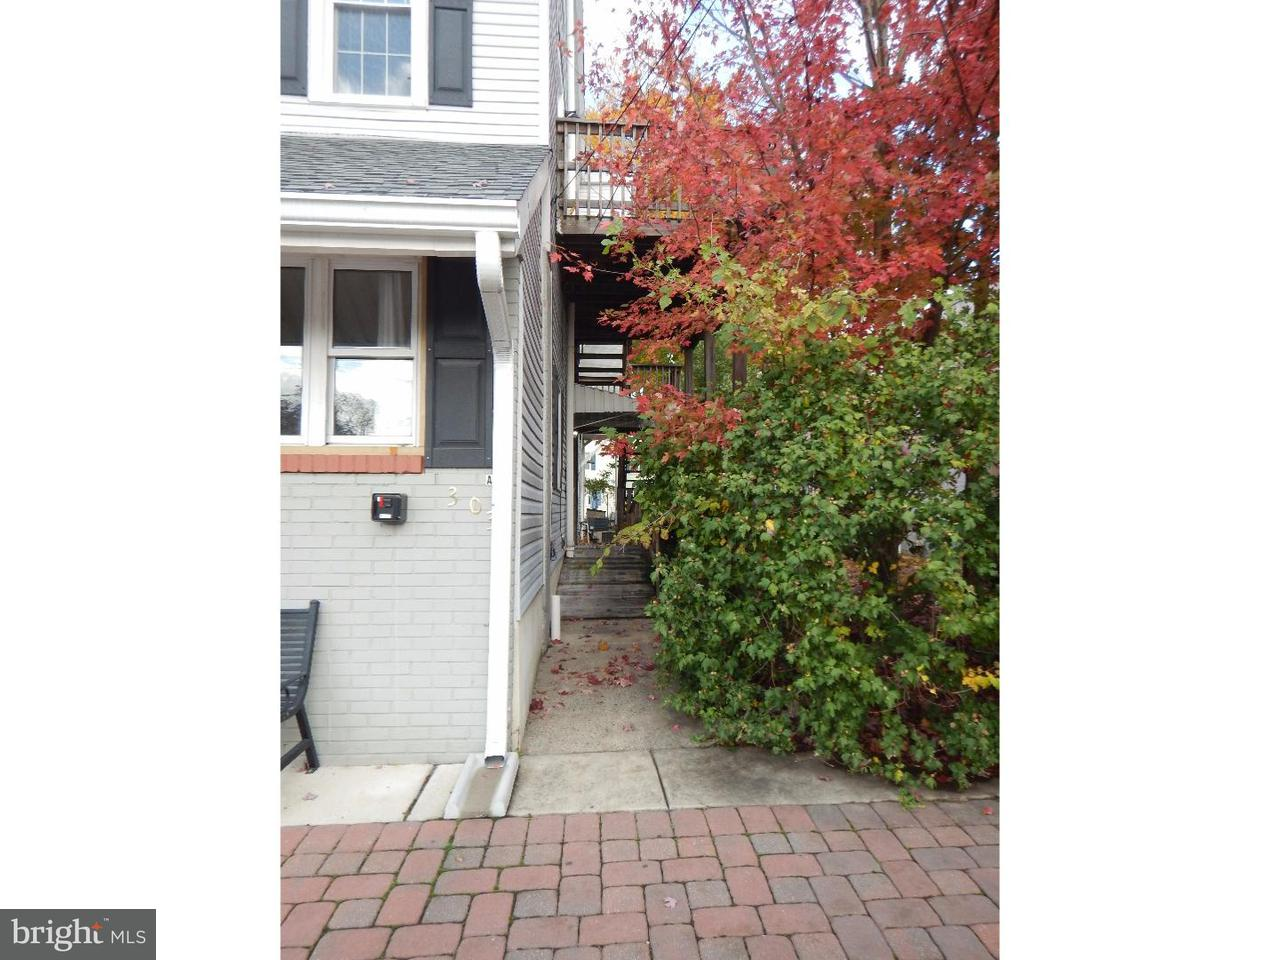 Townhouse for Rent at 301 E ATLANTIC AVE #2ND FL Audubon, New Jersey 08106 United States